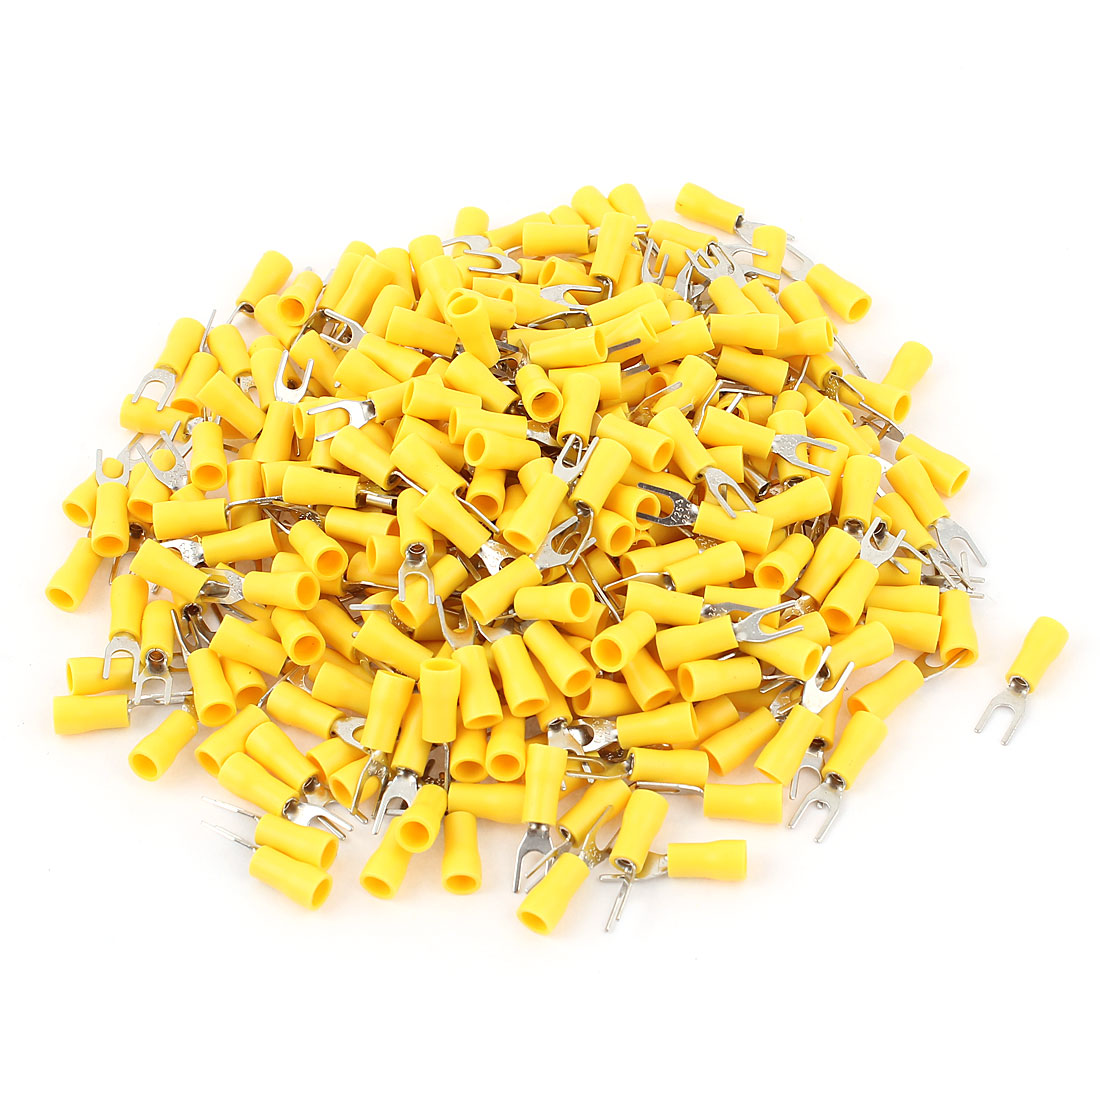 320 Pcs AWG22-16 Yellow SV1.25-3 Wire Connector Insulated Fork Spade Terminals